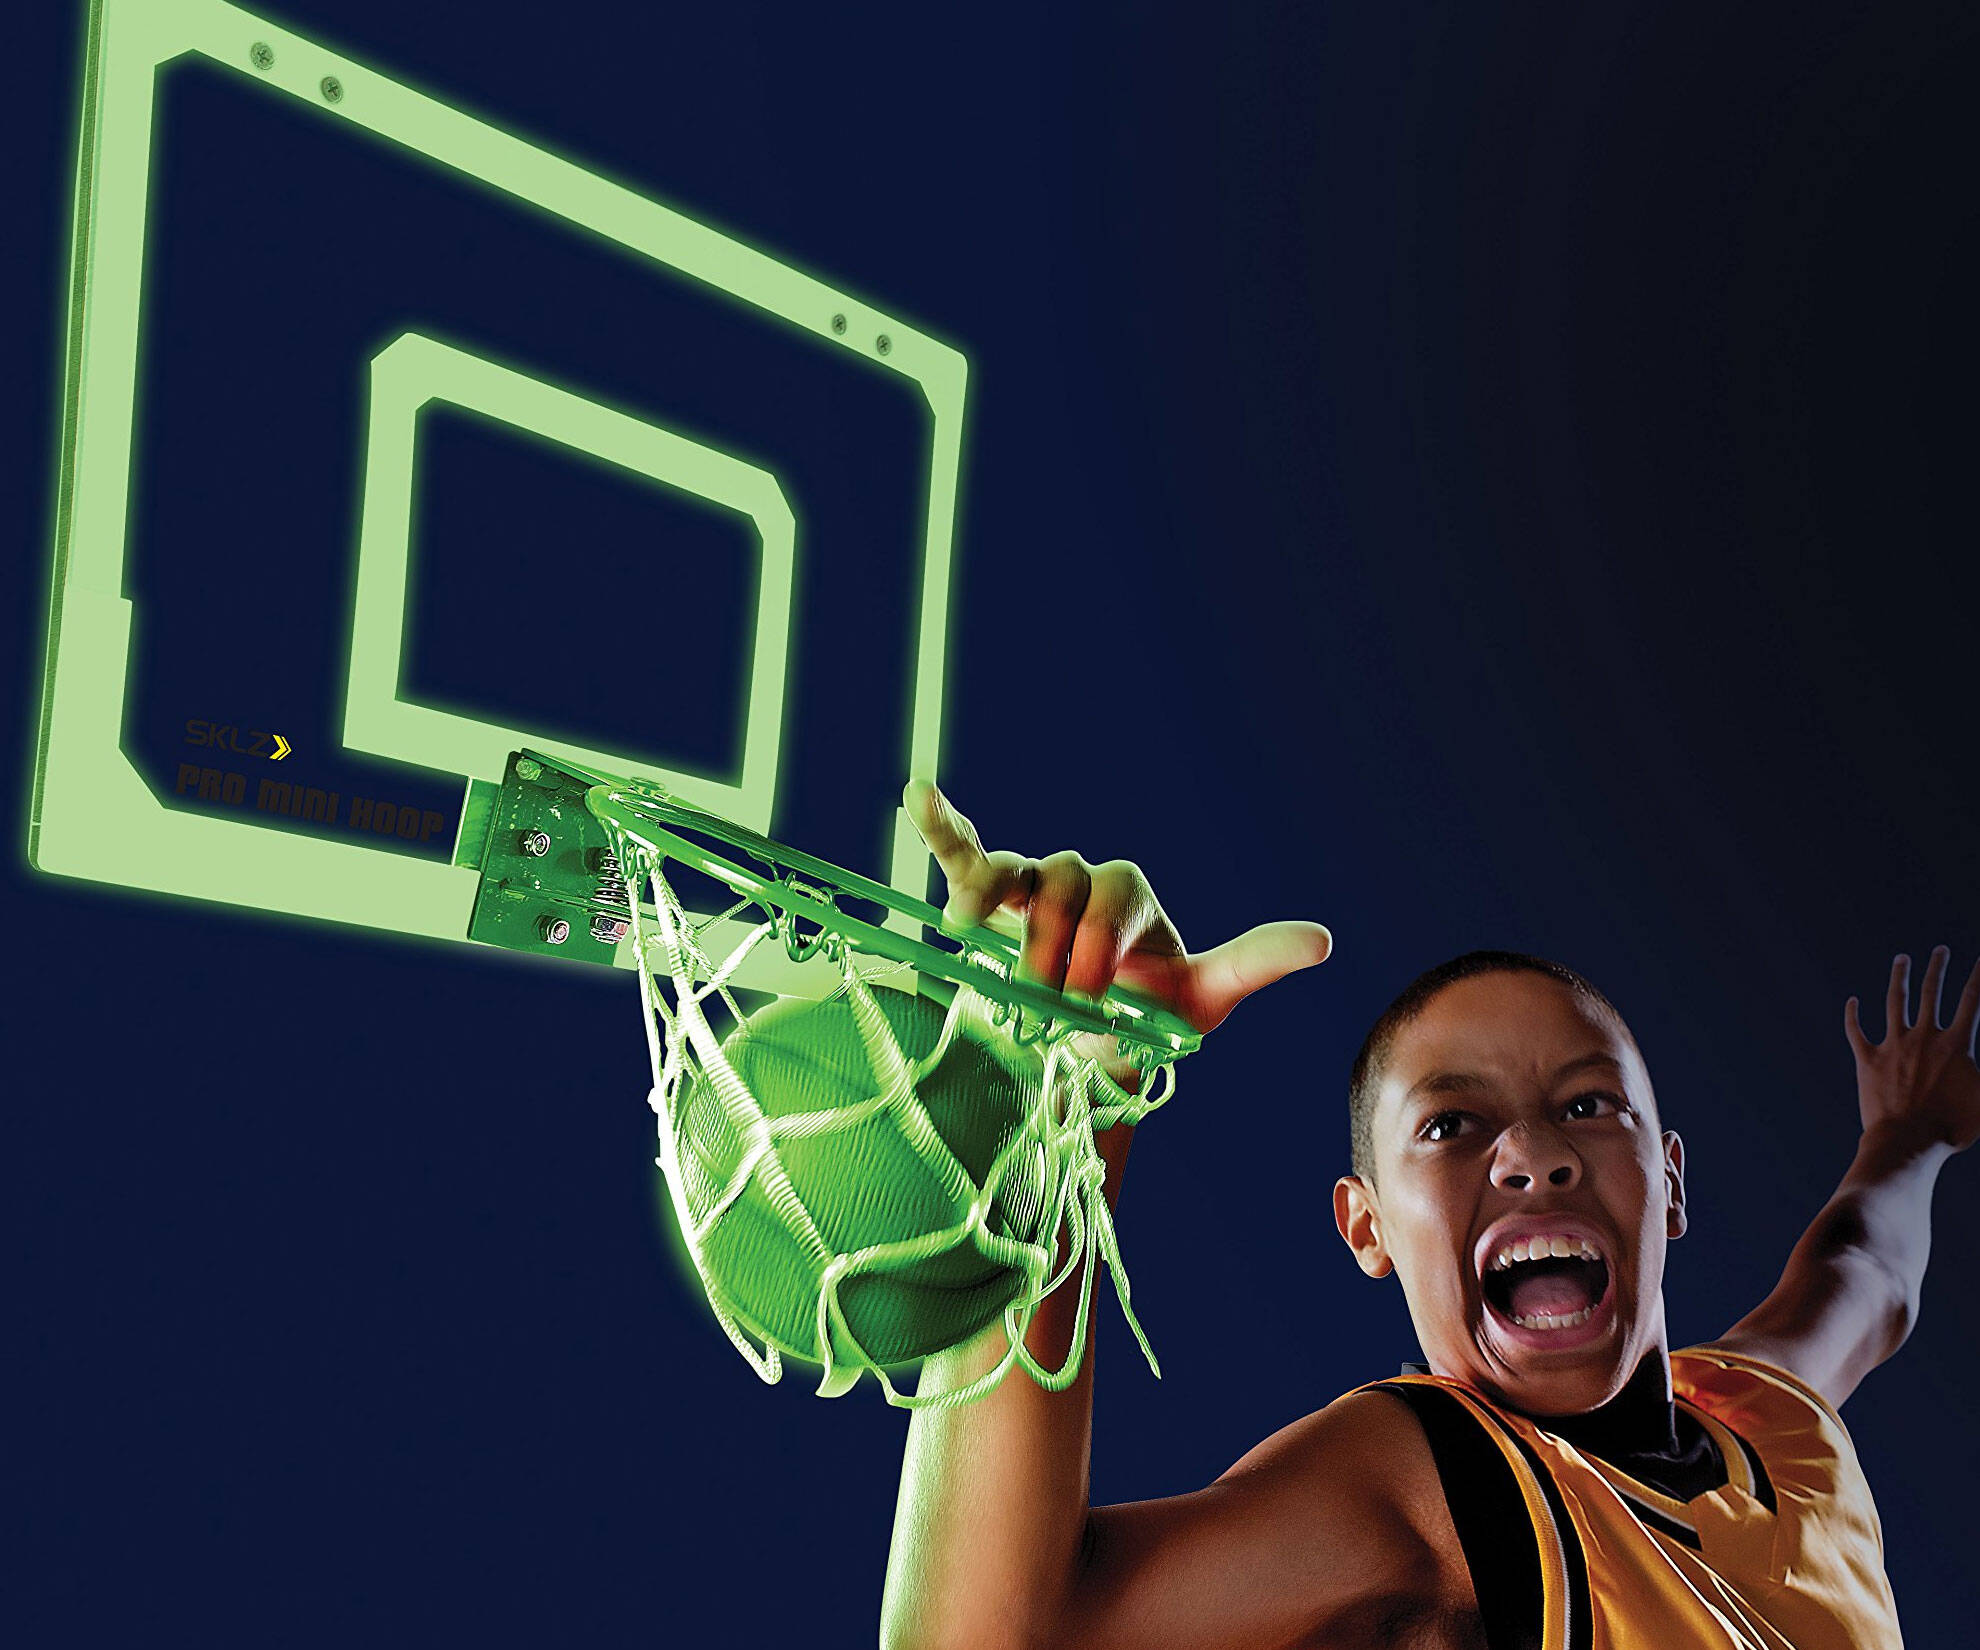 Glow In The Dark Indoor Basketball Hoop - http://coolthings.us